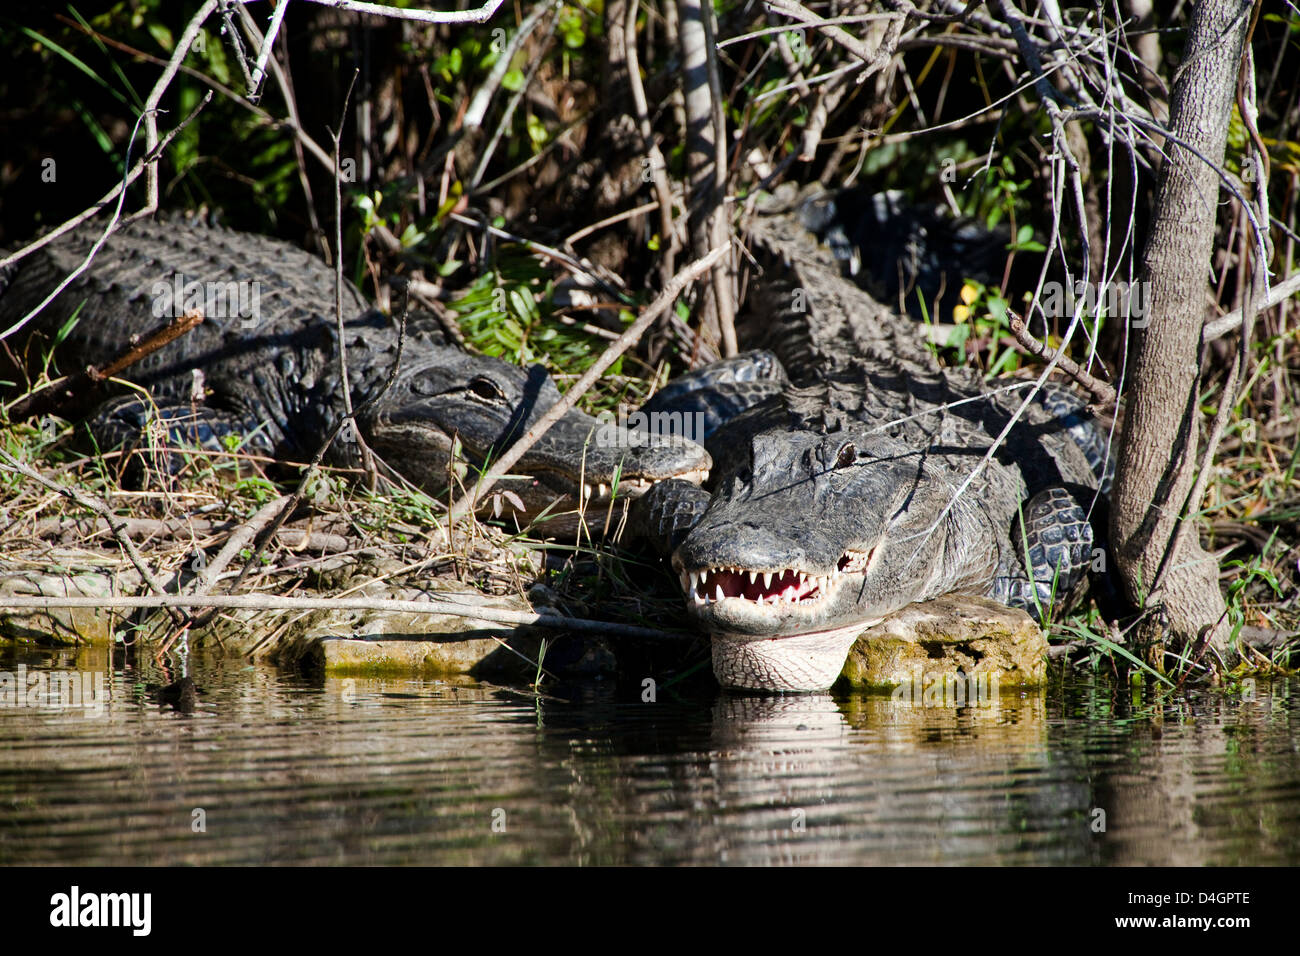 American alligators, Alligator mississippiensis, on a river bank in Everglades National Park, Florida. - Stock Image